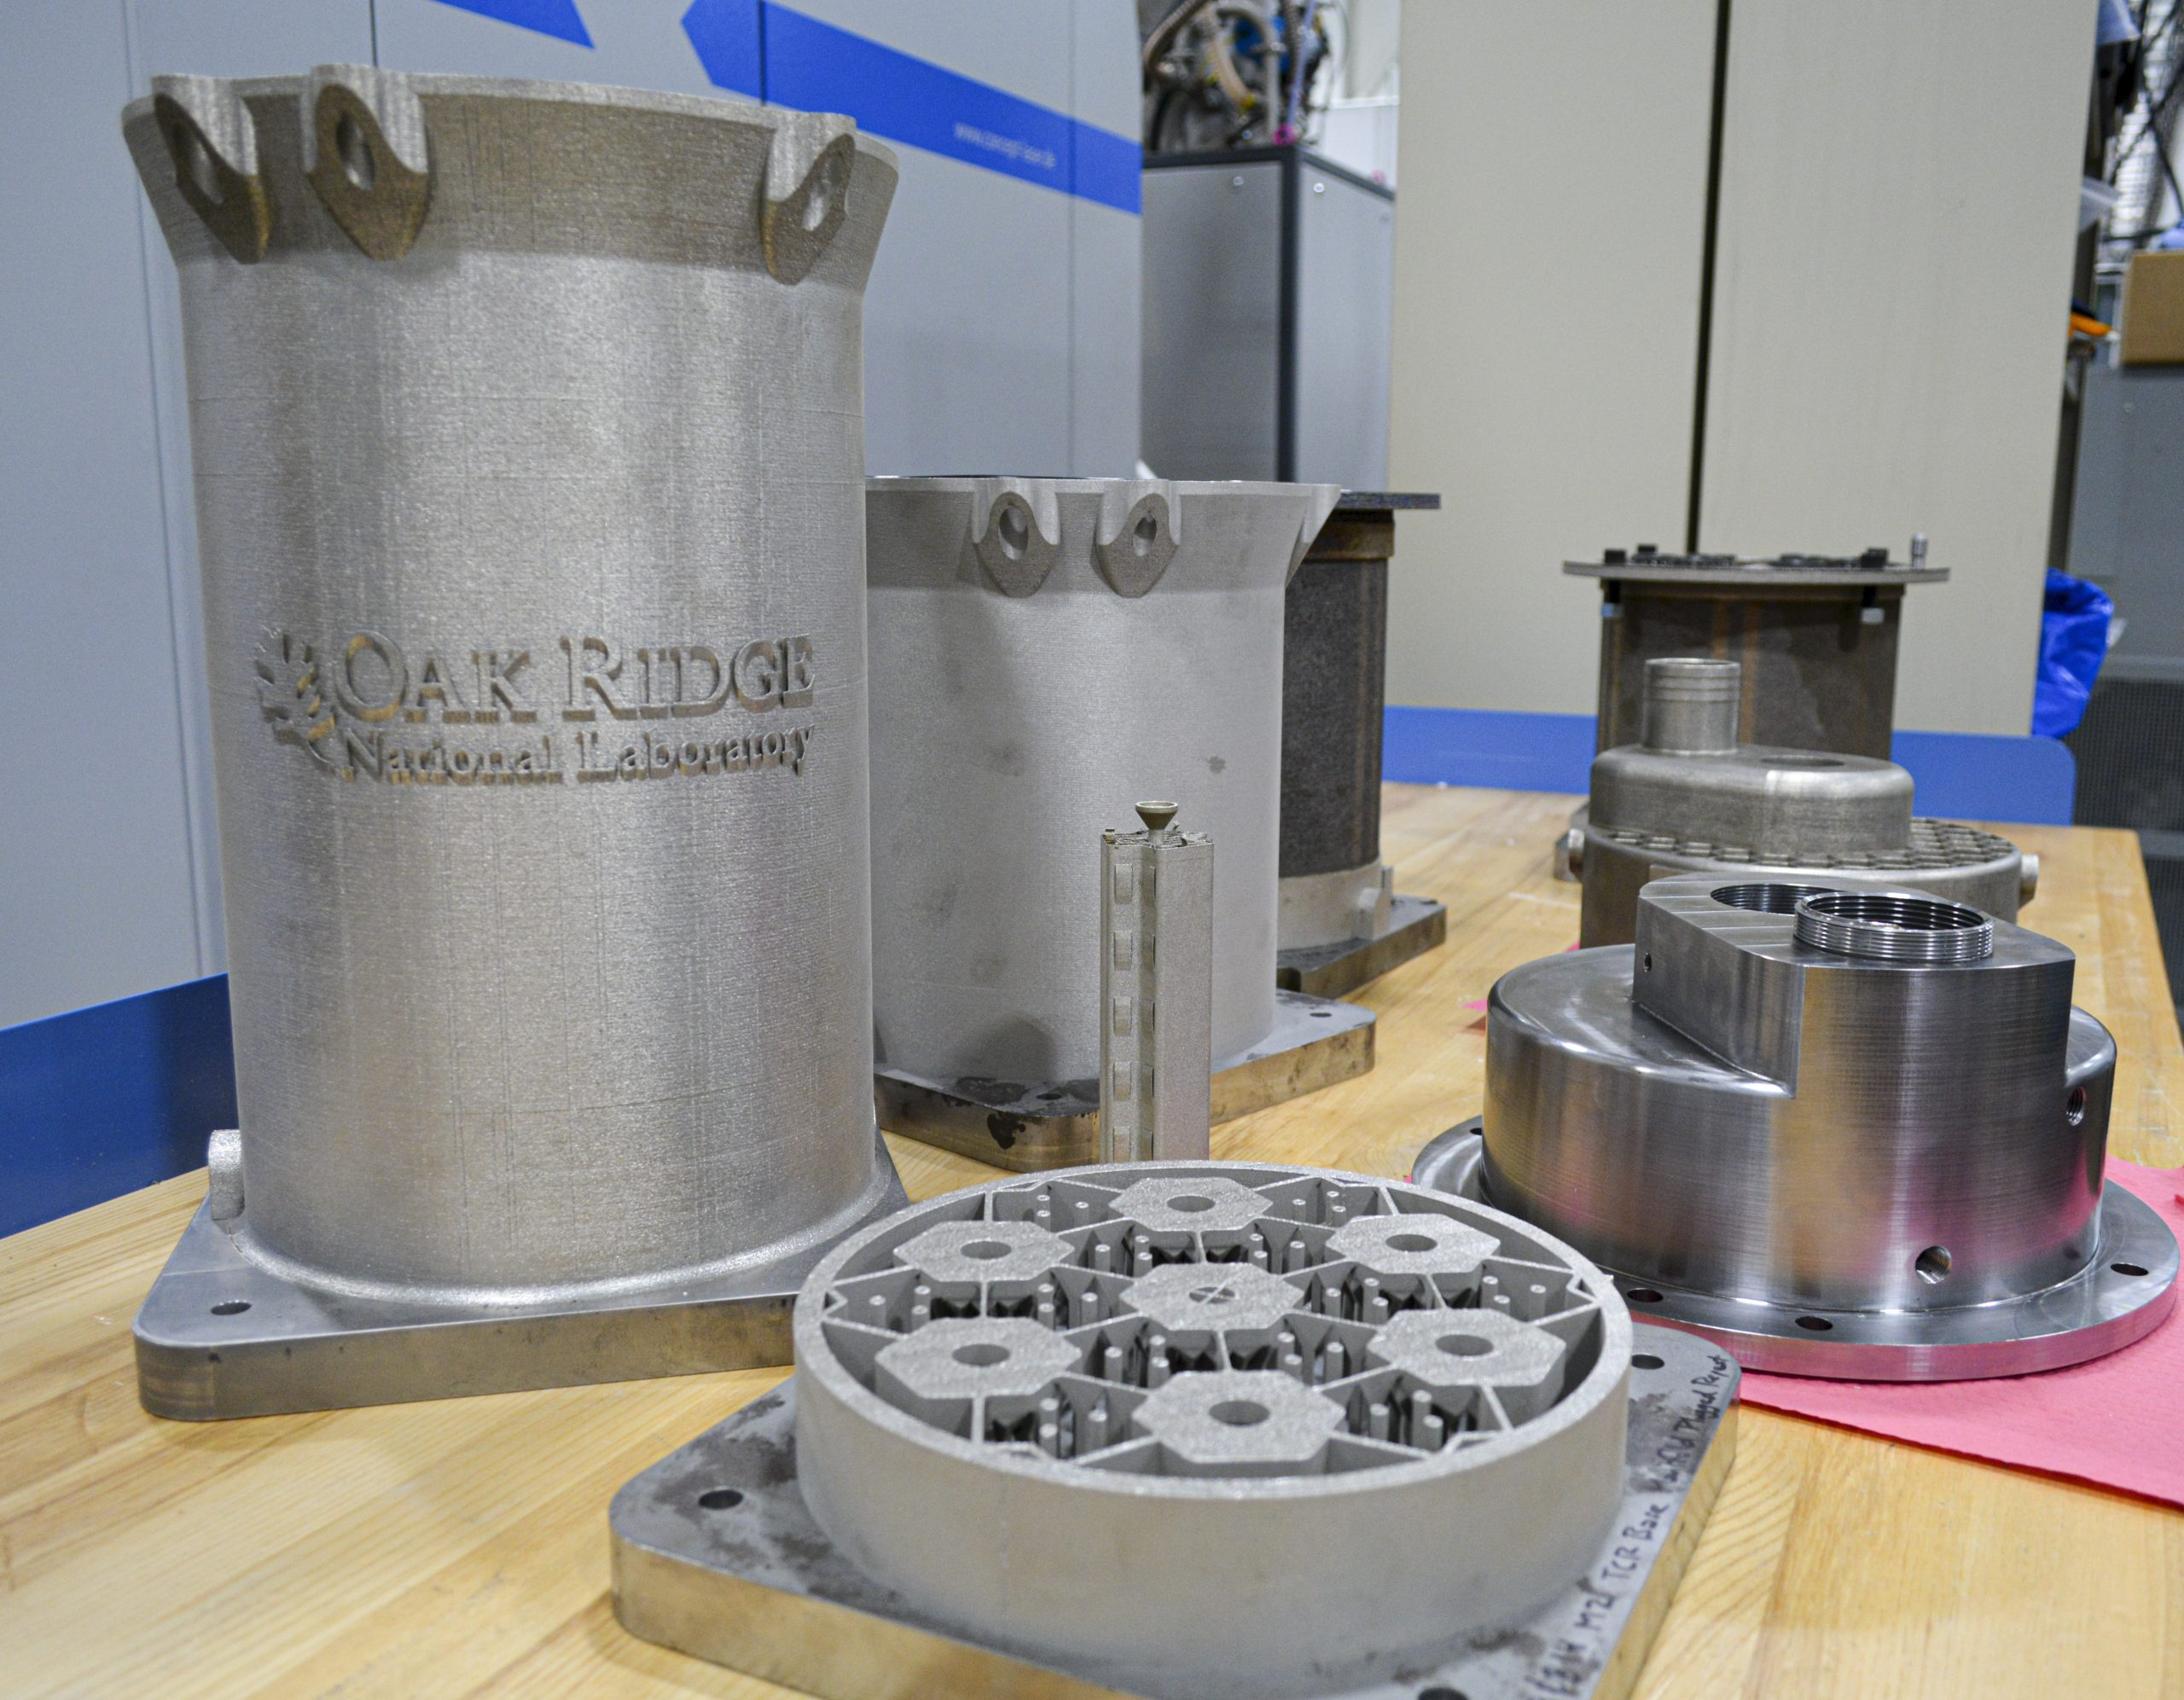 3D printed nuclear reactor